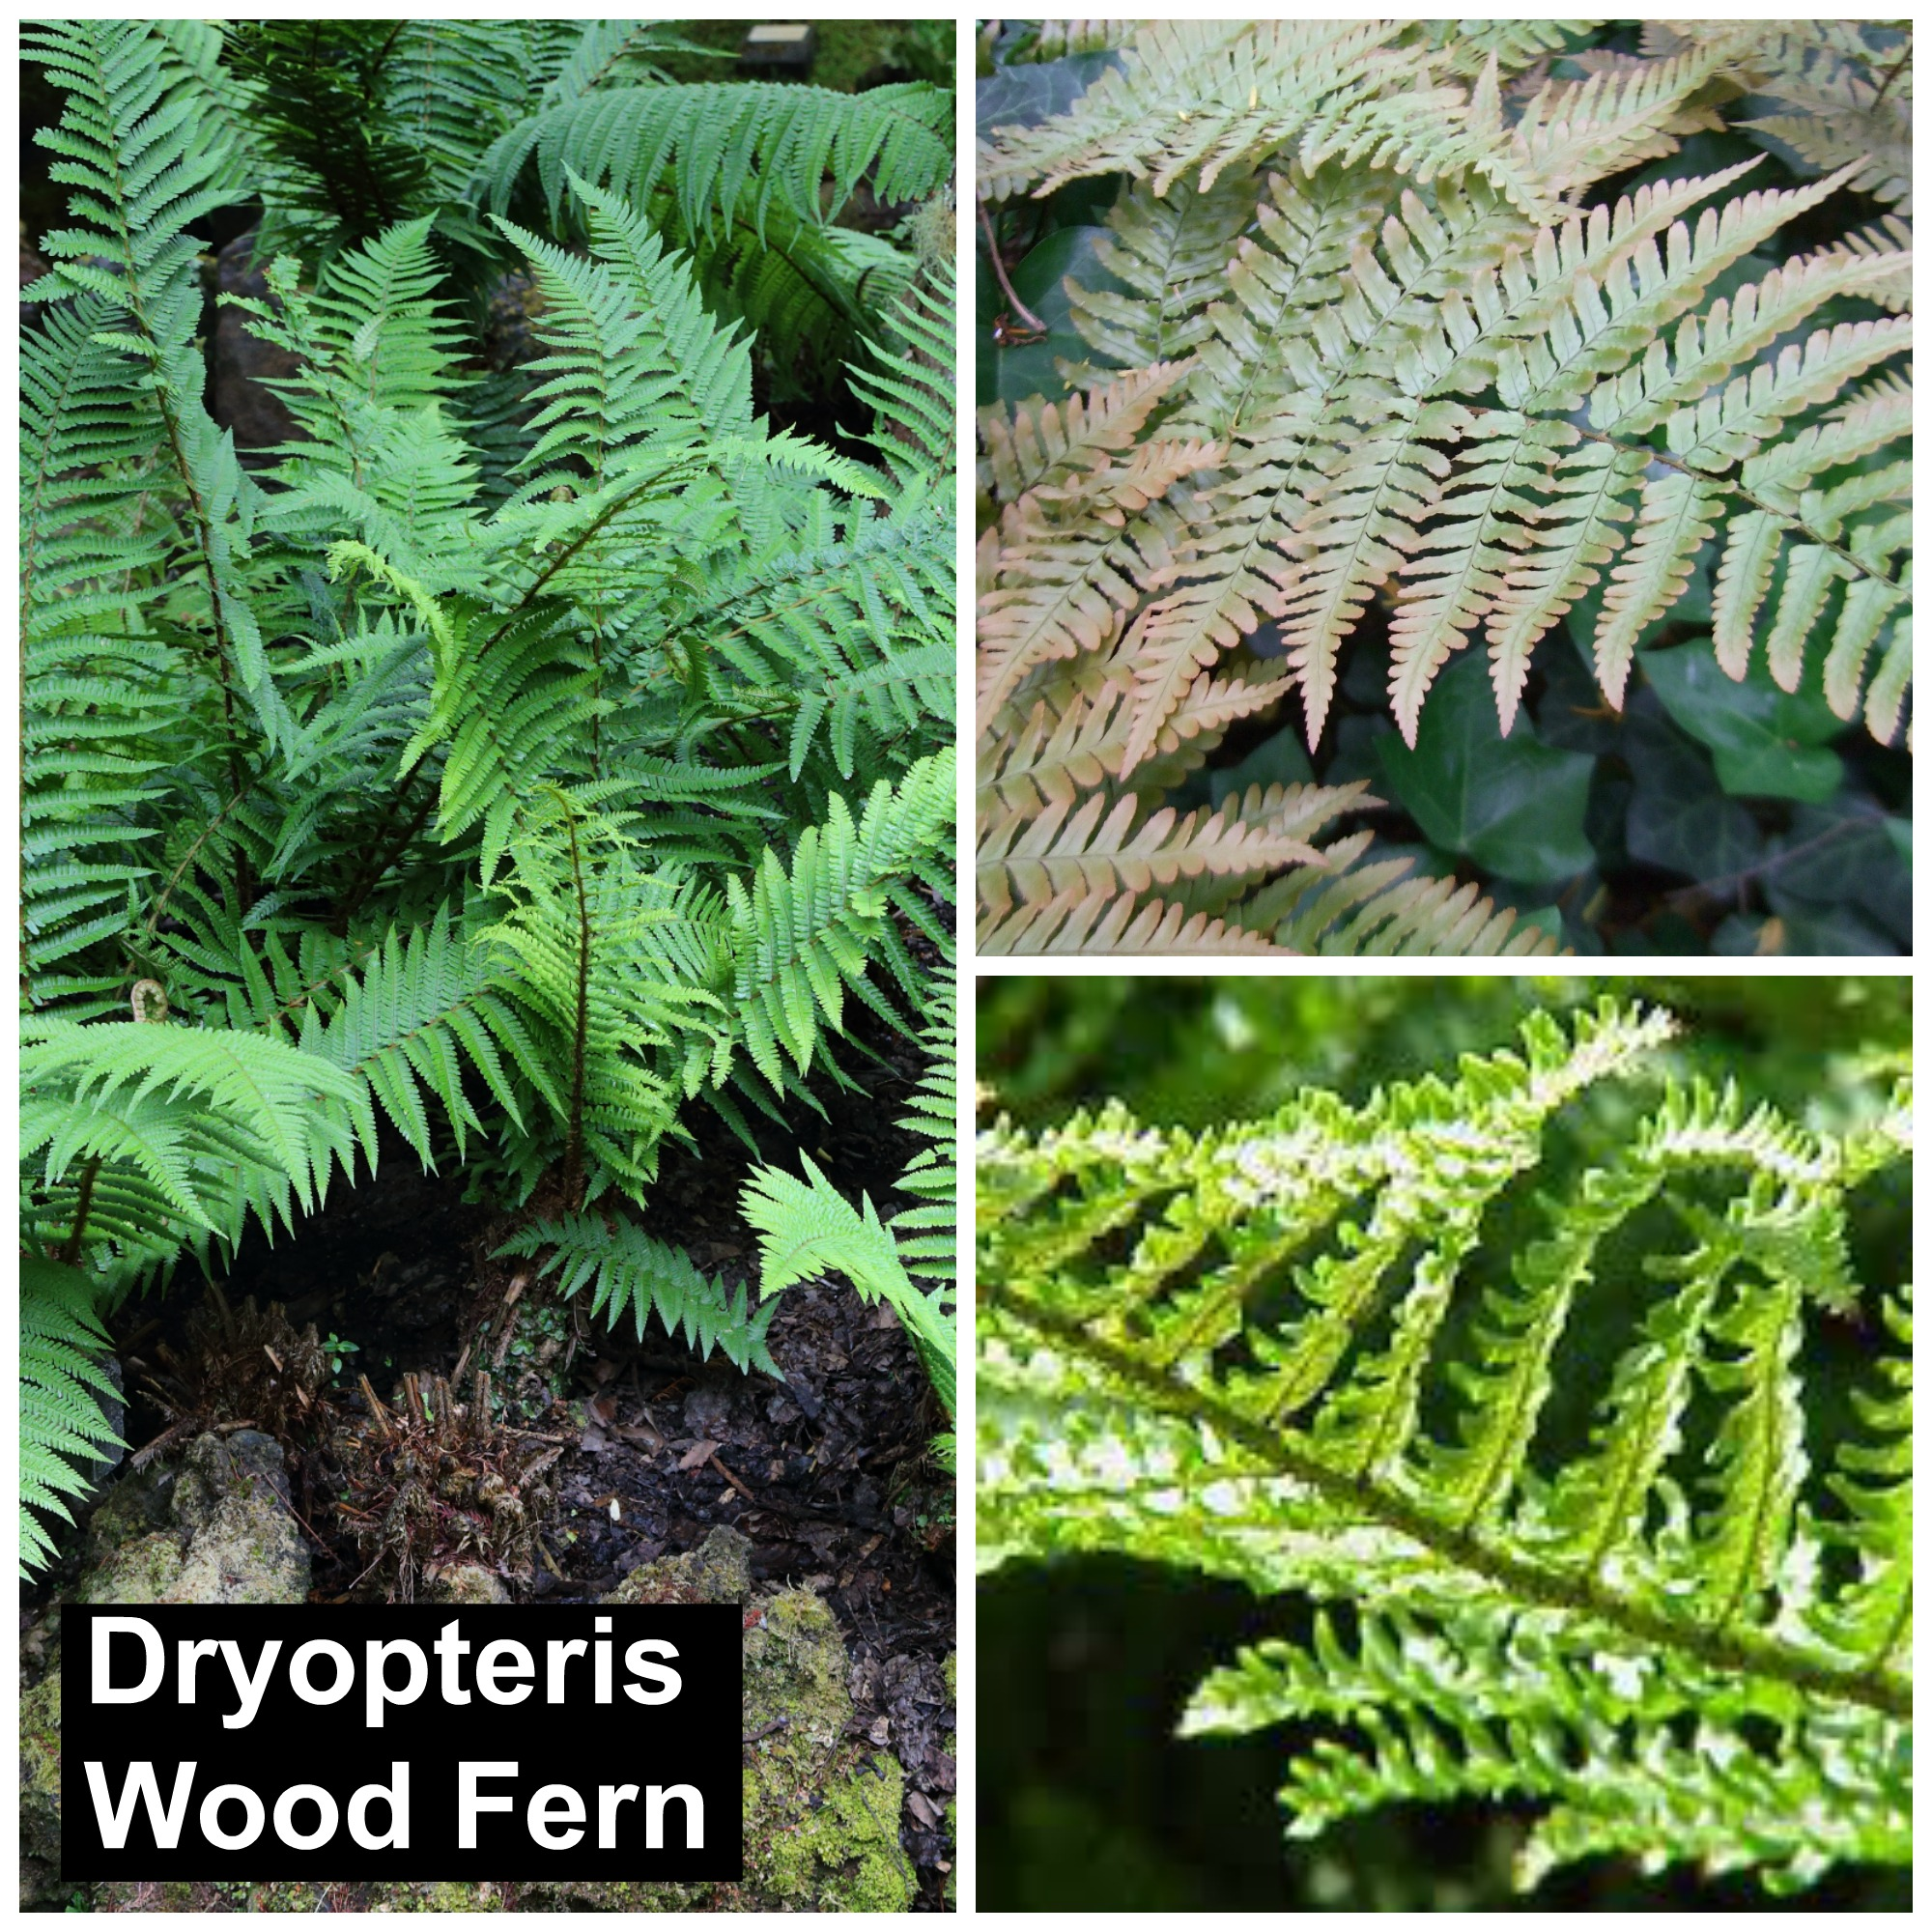 dryopteris wood fern